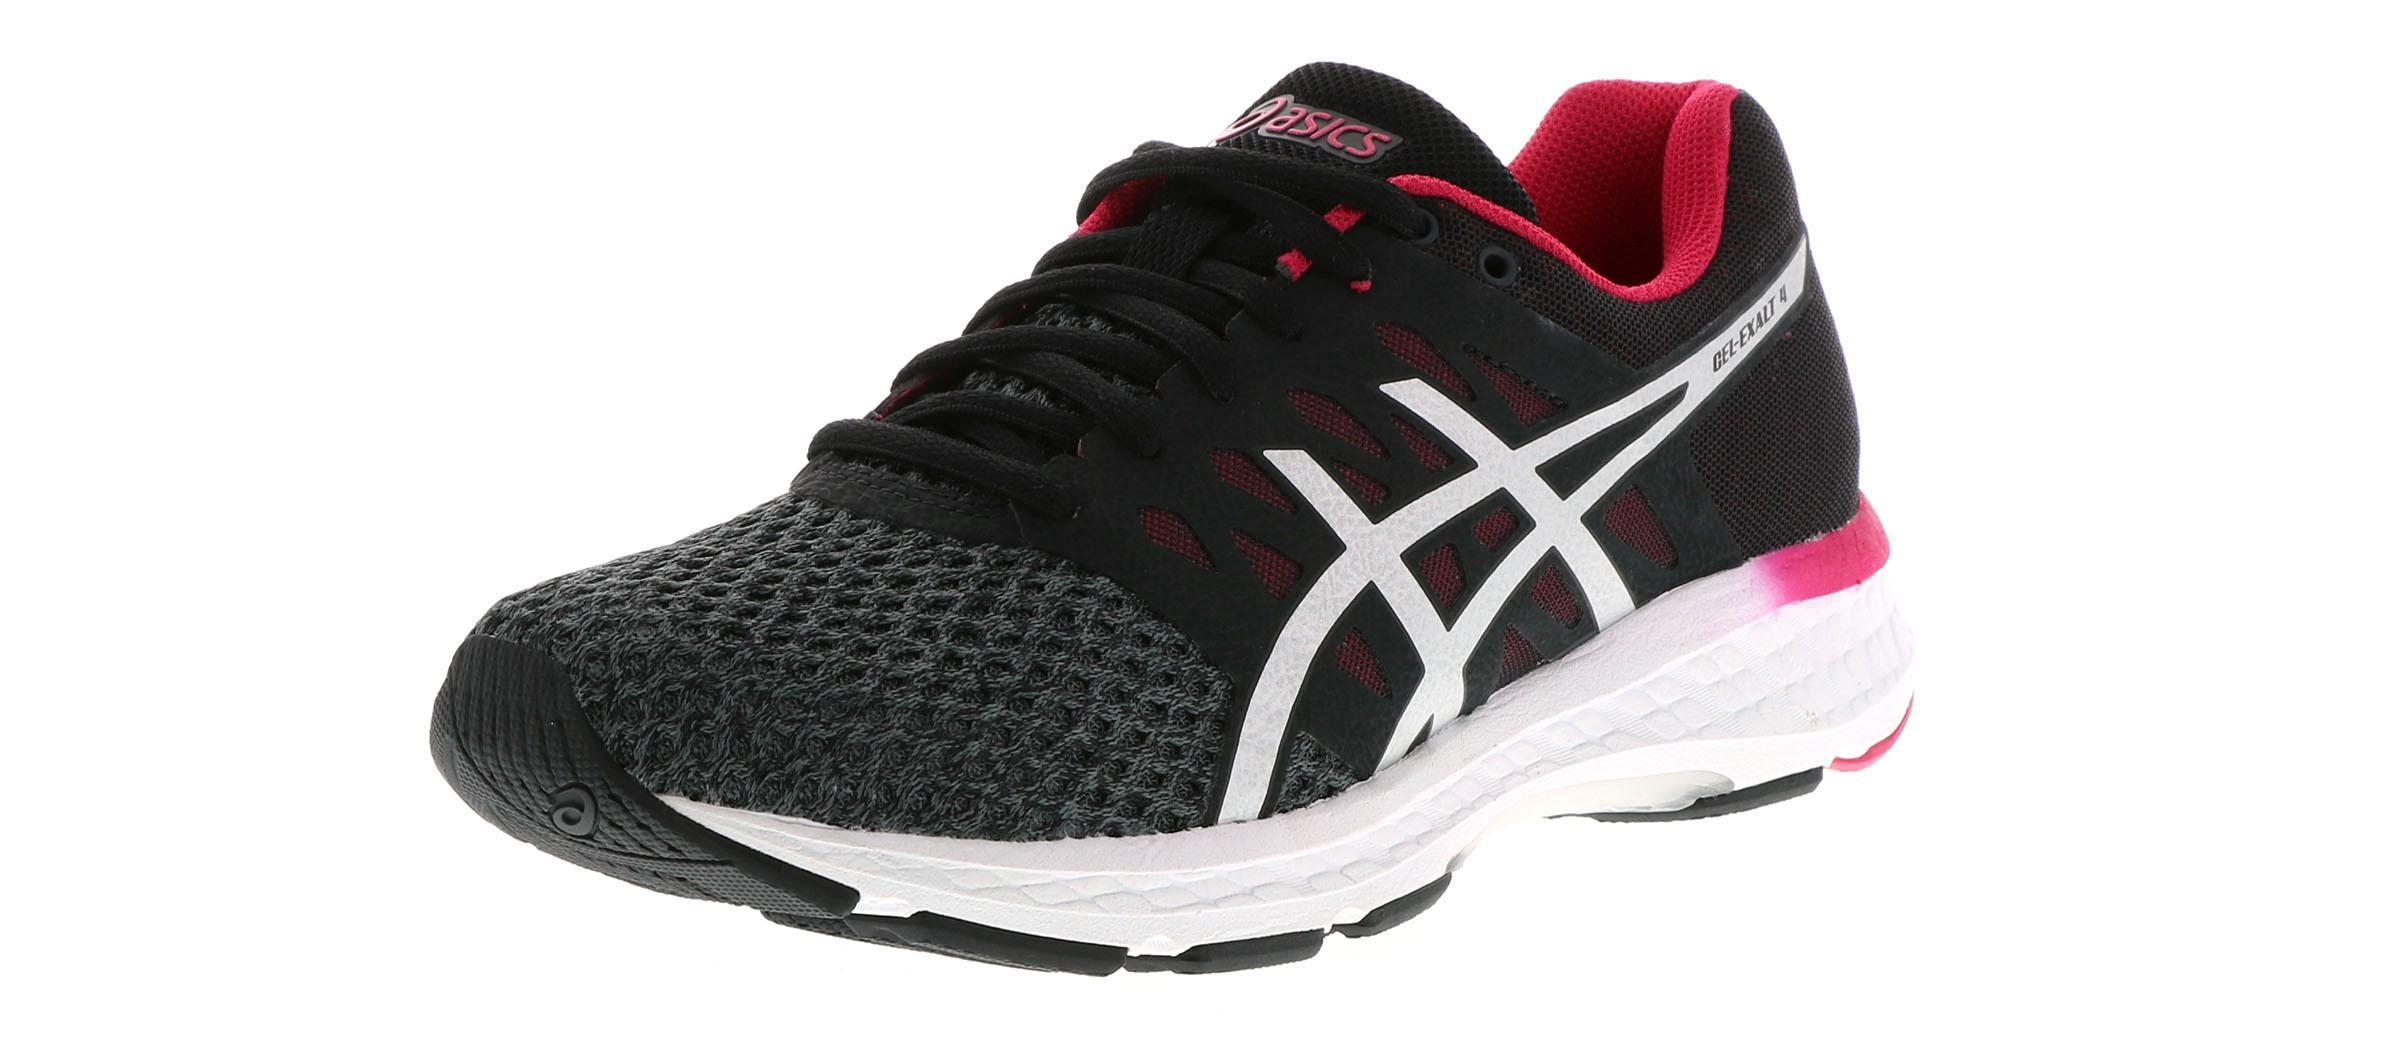 62c7d982a76 Women's Asics Gel Exalt 4 Black | Shoe Sensation